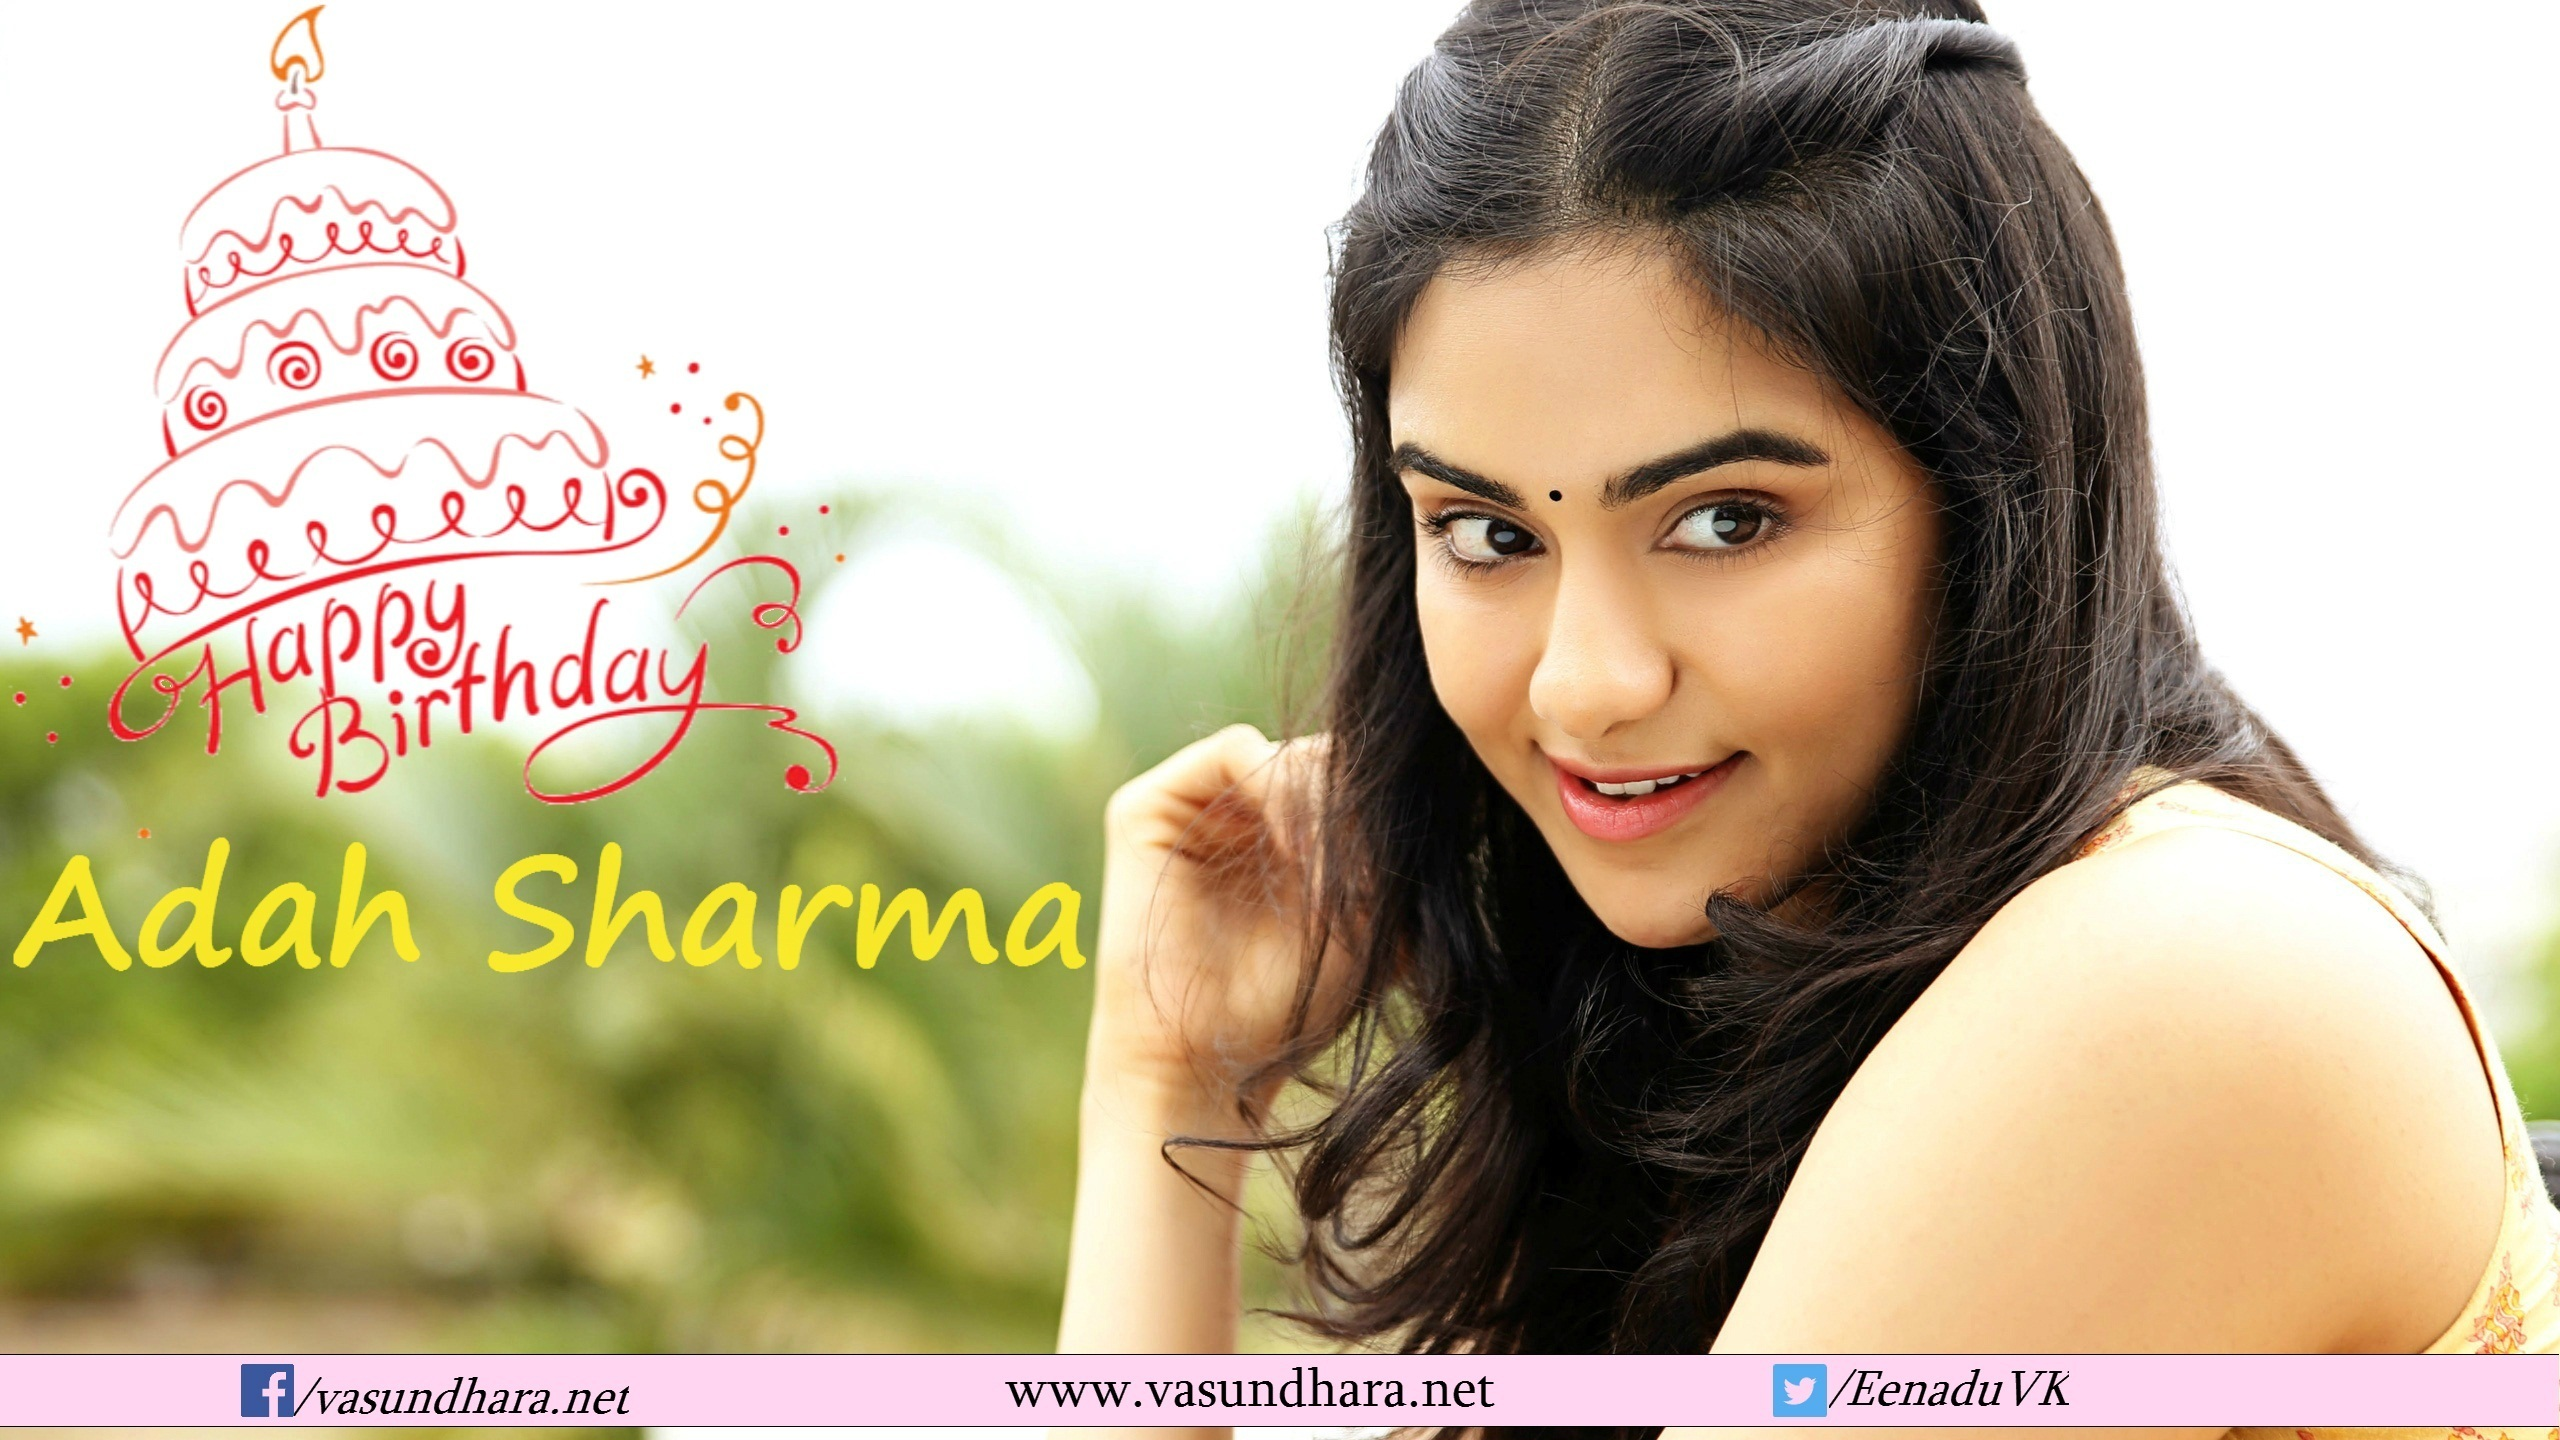 Happy Birthday Adah Sharma Empowering Women